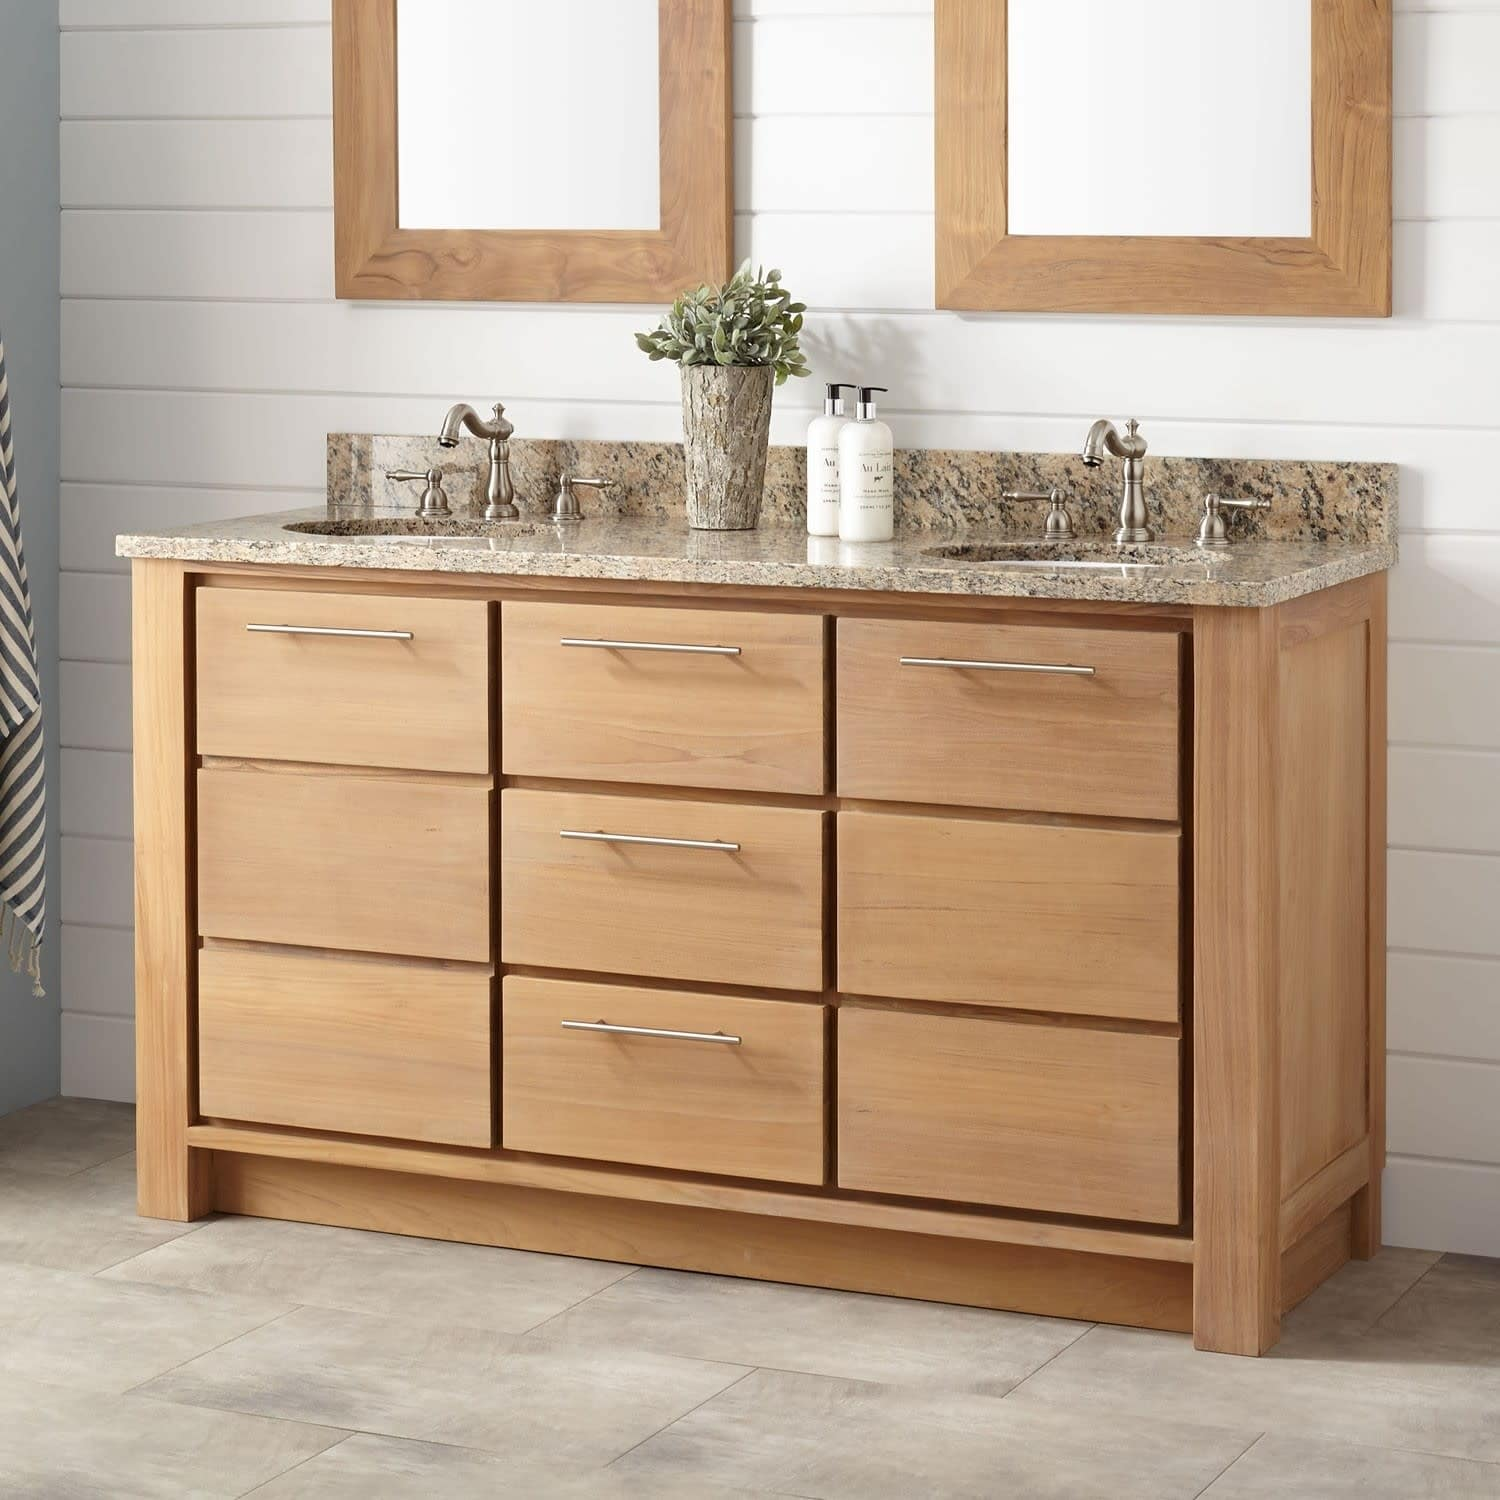 Signature Hardware 942083 8 Venica 60 Double Vanity Set With Teak Cabinet Gran Overstock 25741181